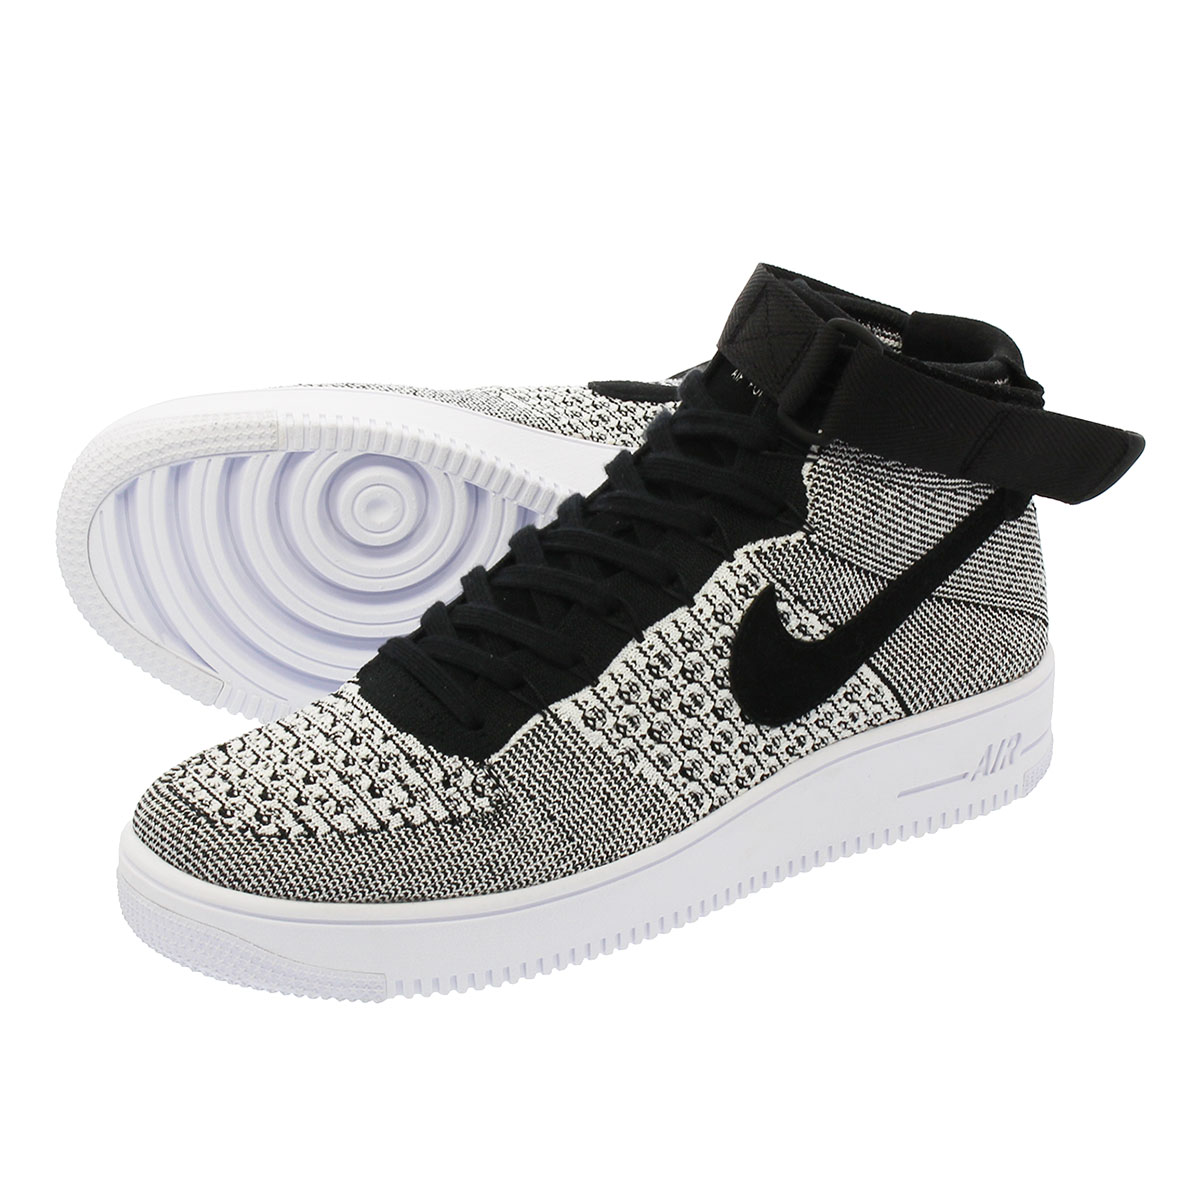 d4688471d5fa NIKE AIR FORCE 1 ULTRA FLYKNIT MID Nike air force 1 ultra fly knit mid BLACK  BLACK WHITE